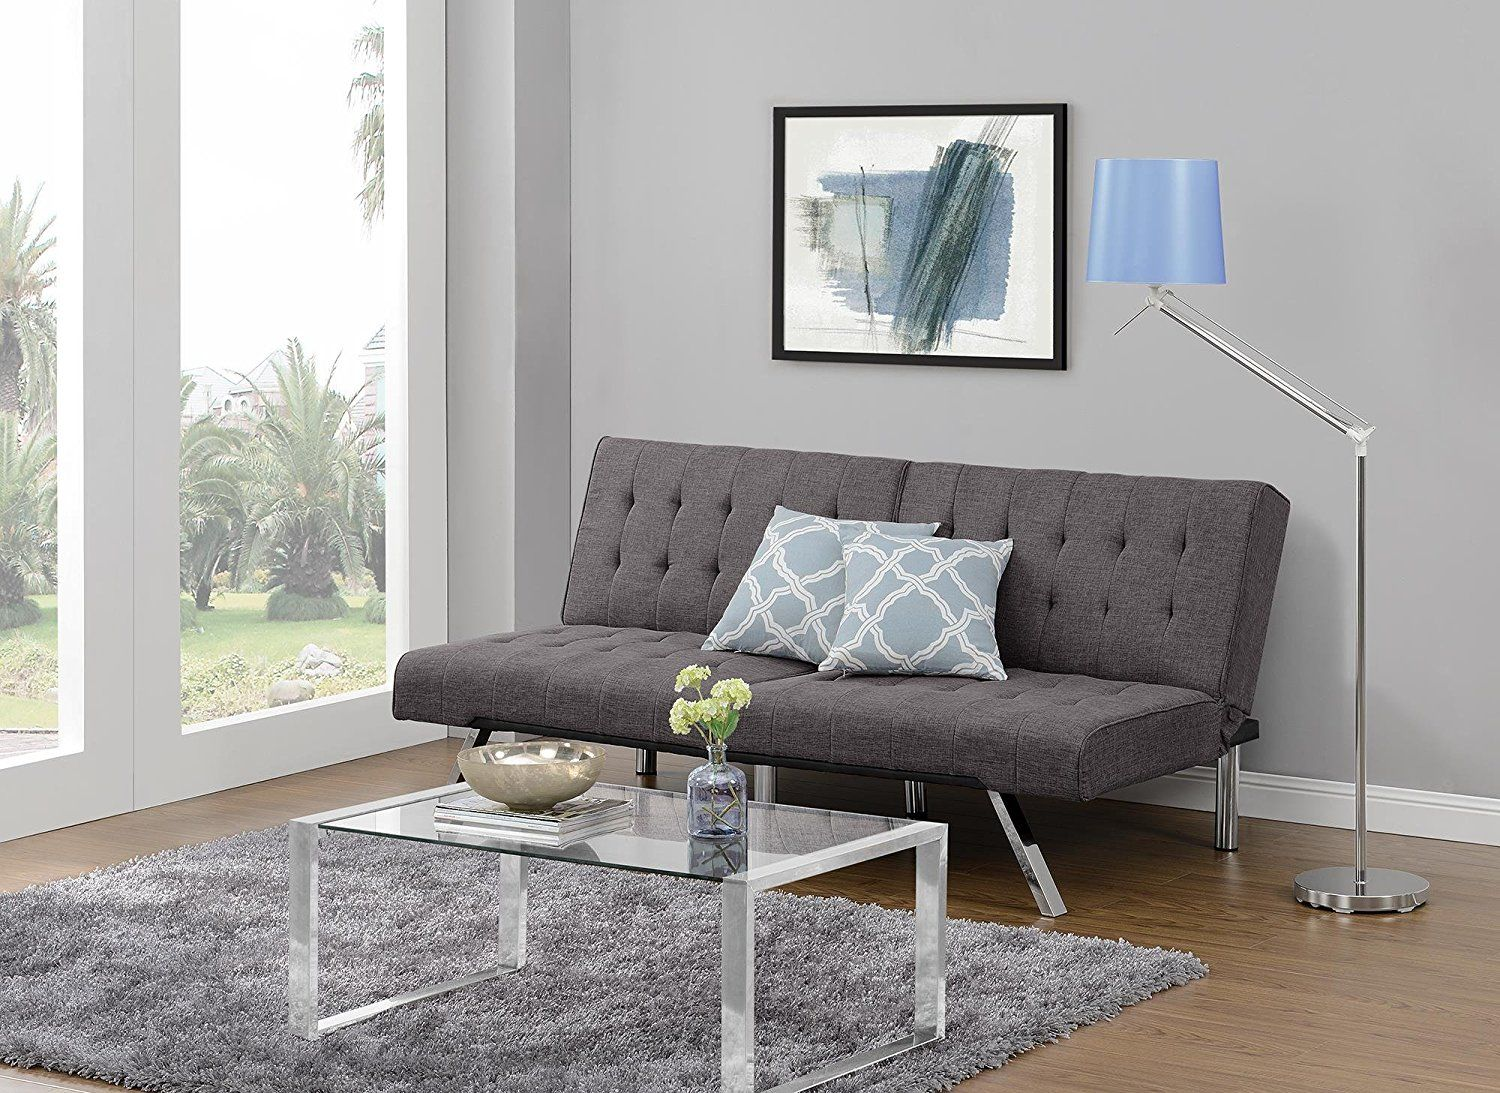 Amazon Sofa Bed Grey Amazon Dhp Emily Futon Sofa Bed Modern Convertible Couch